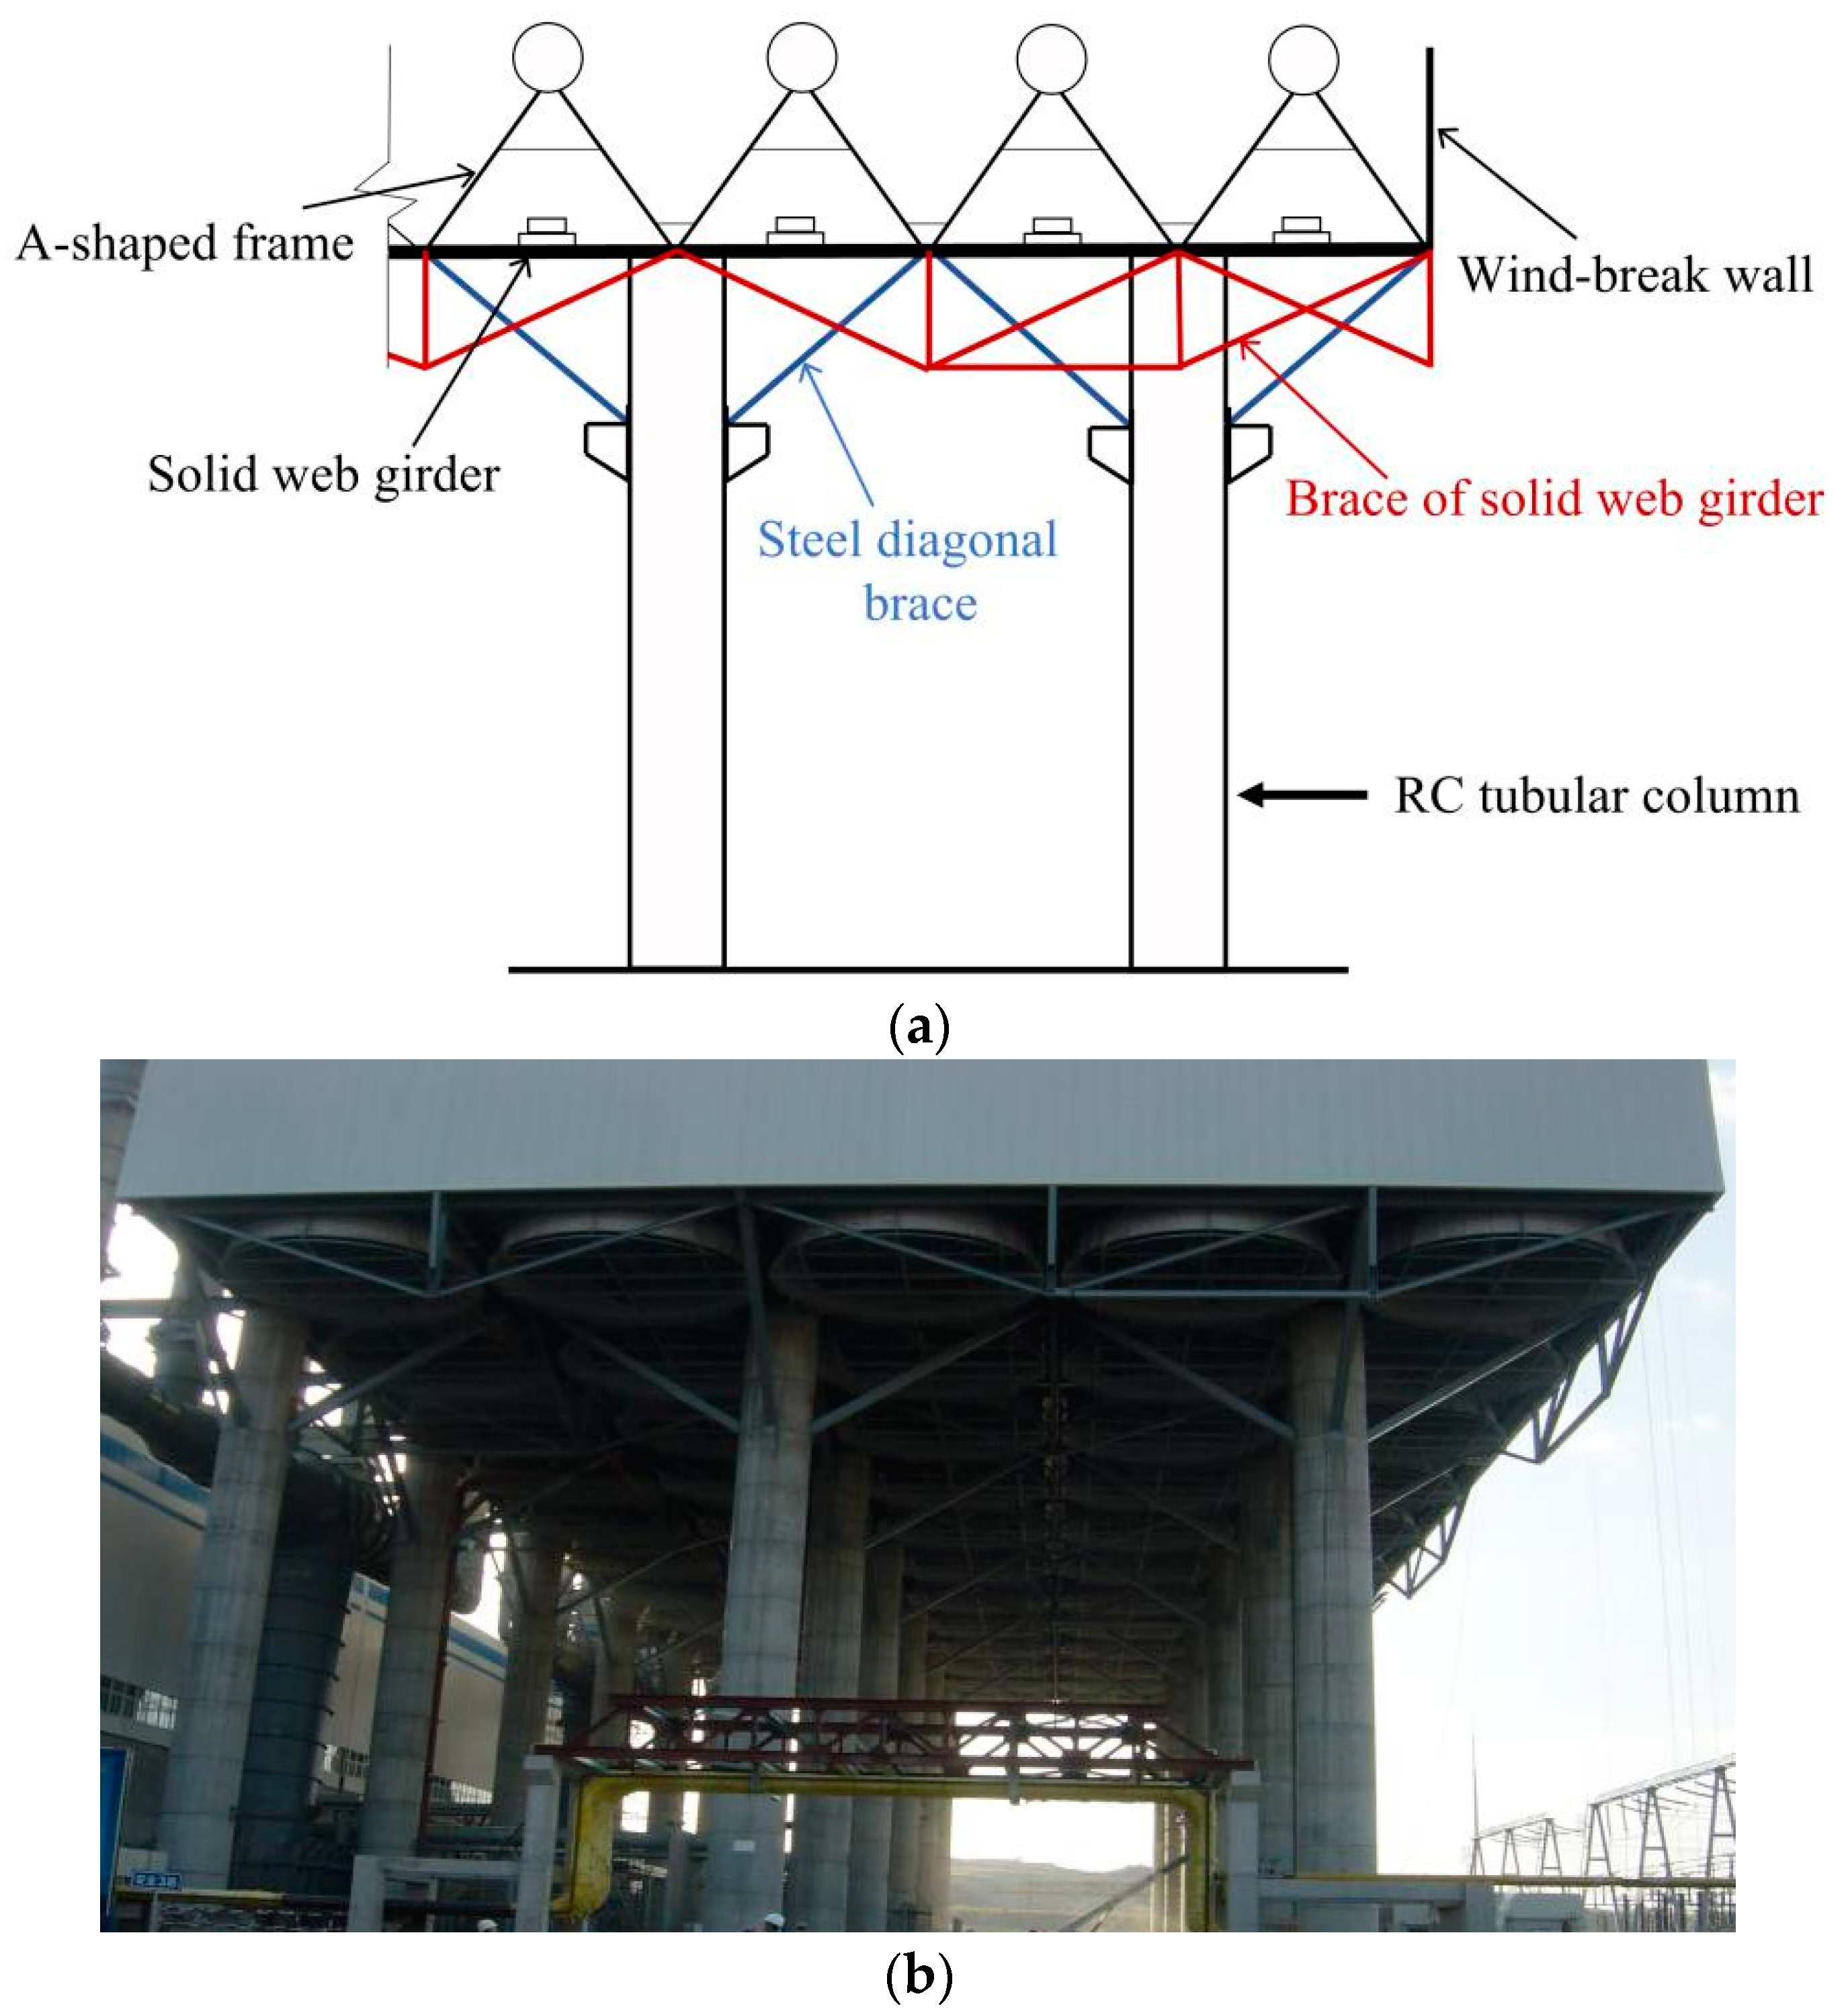 Applied Sciences Free Full Text Seismic Analysis Of Steel Solid Wall Schematic Engineering Diagram No